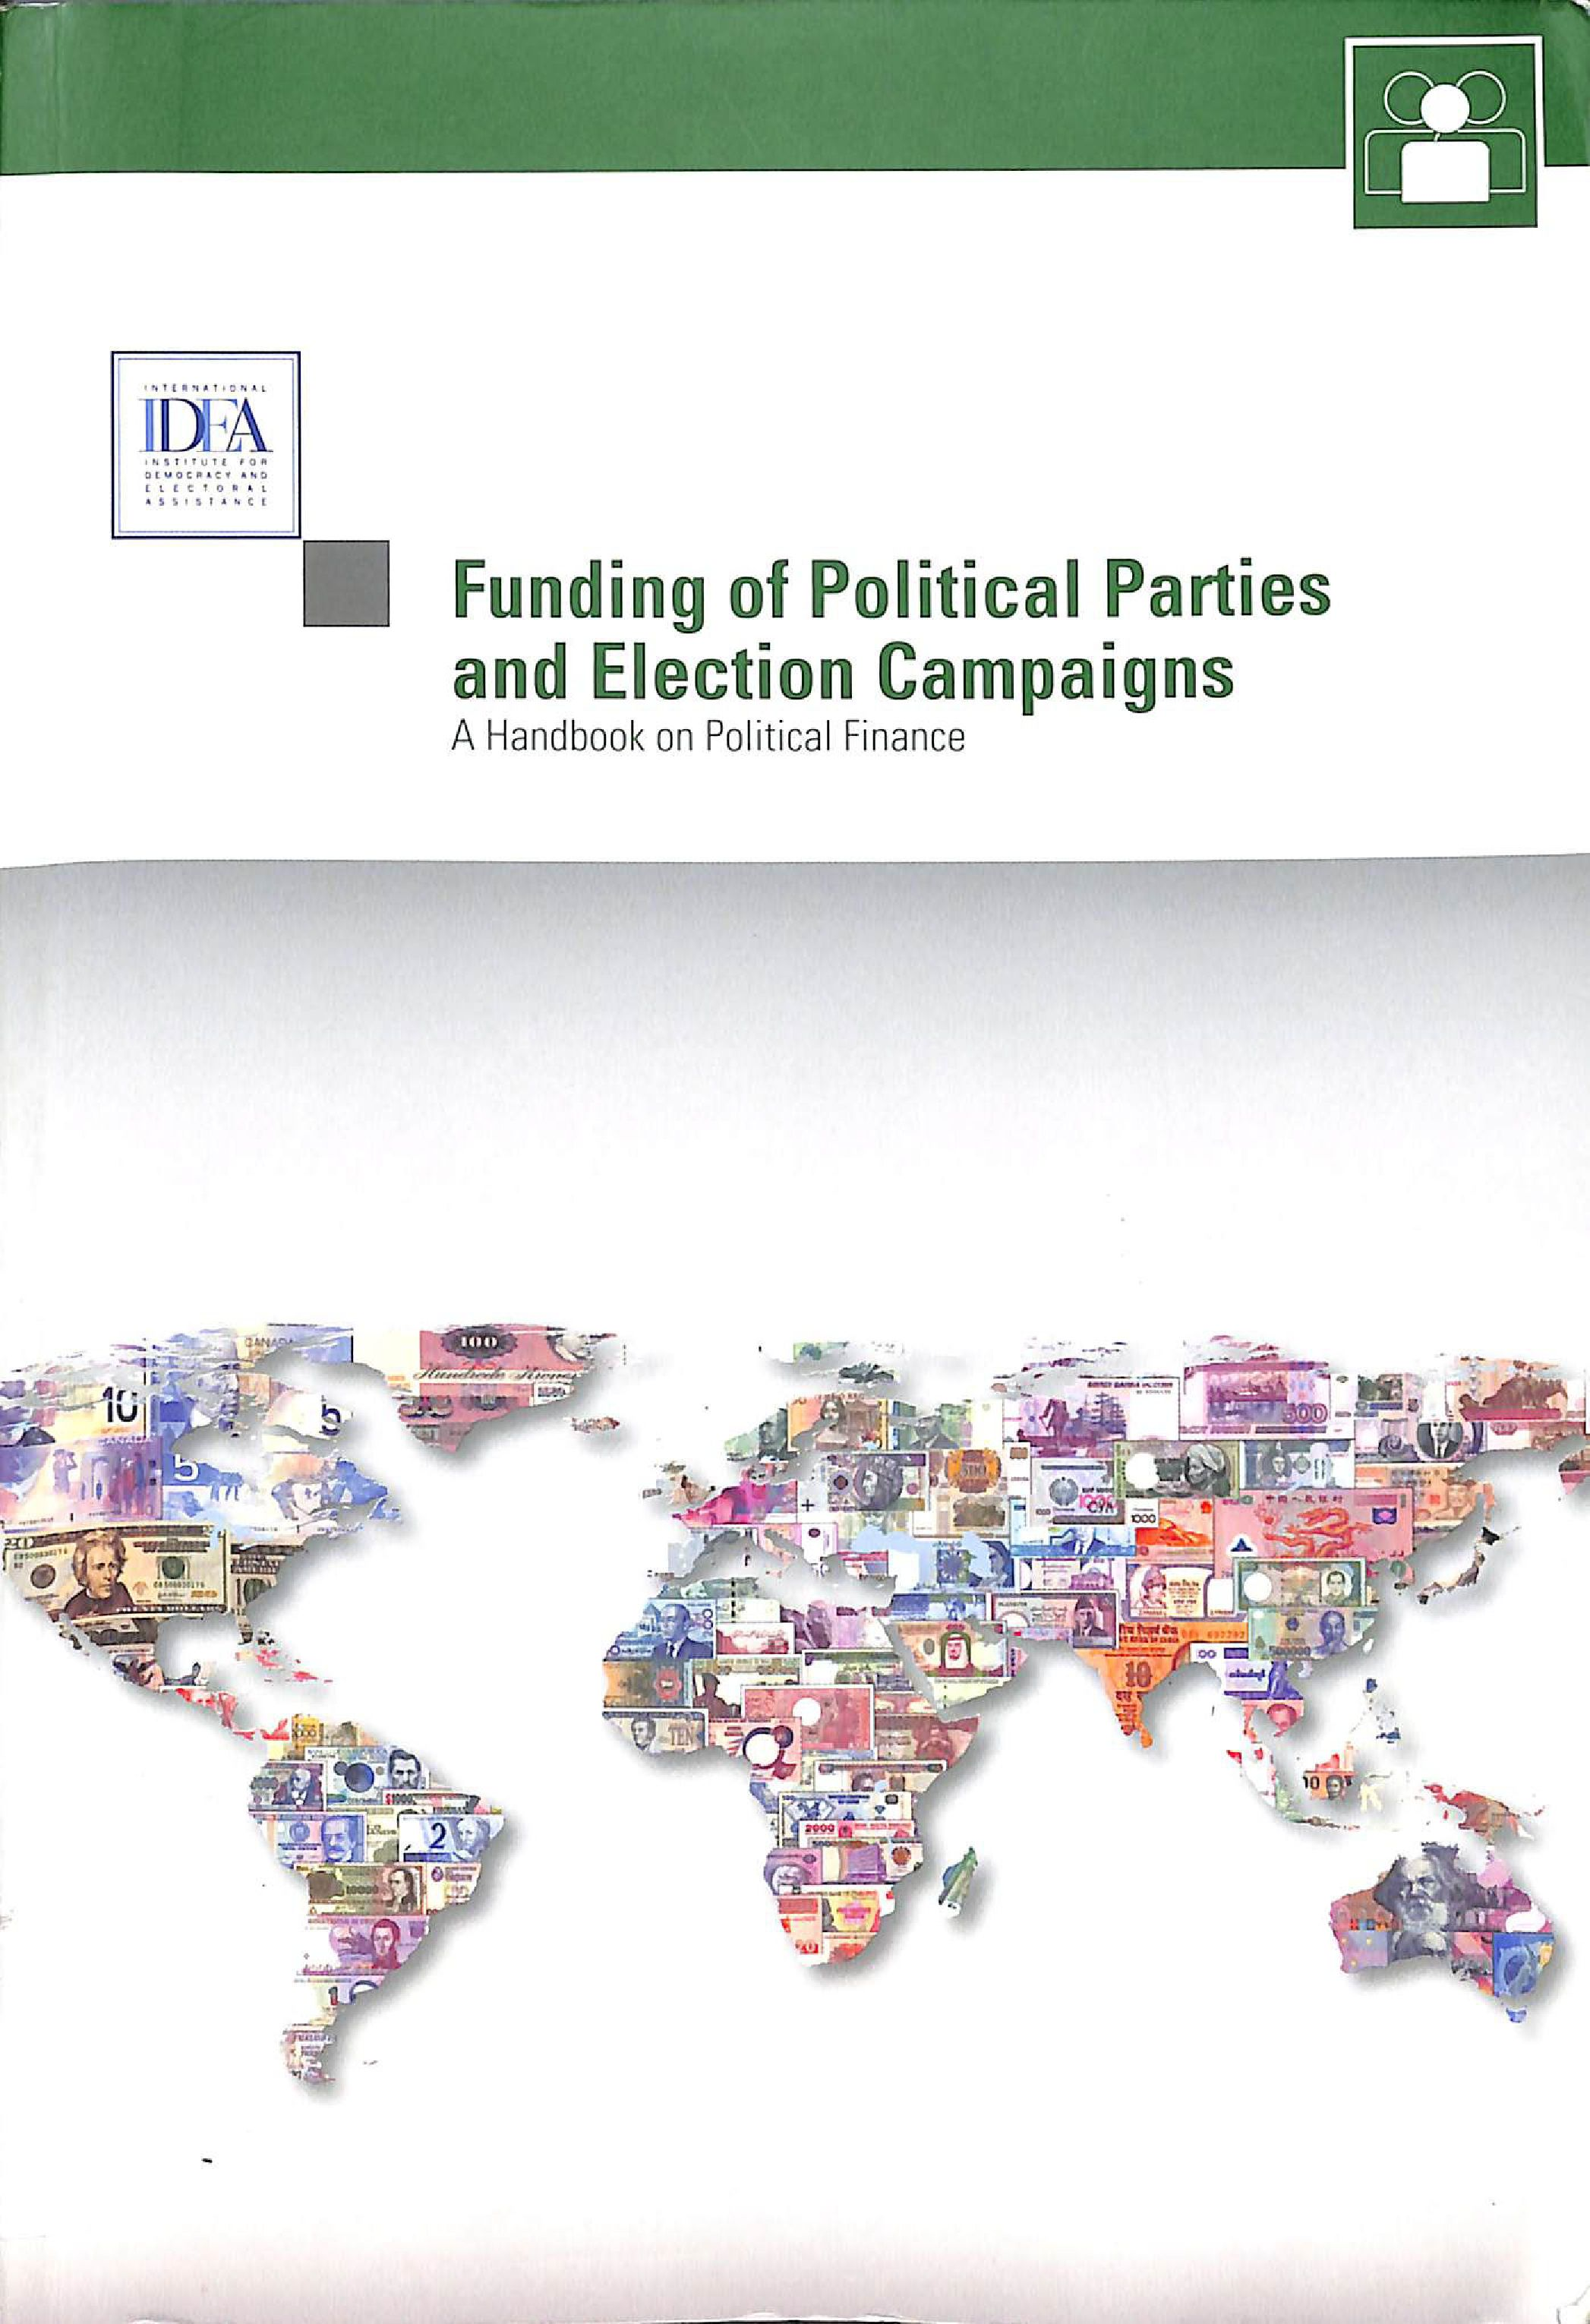 Funding political parties and election campaigns